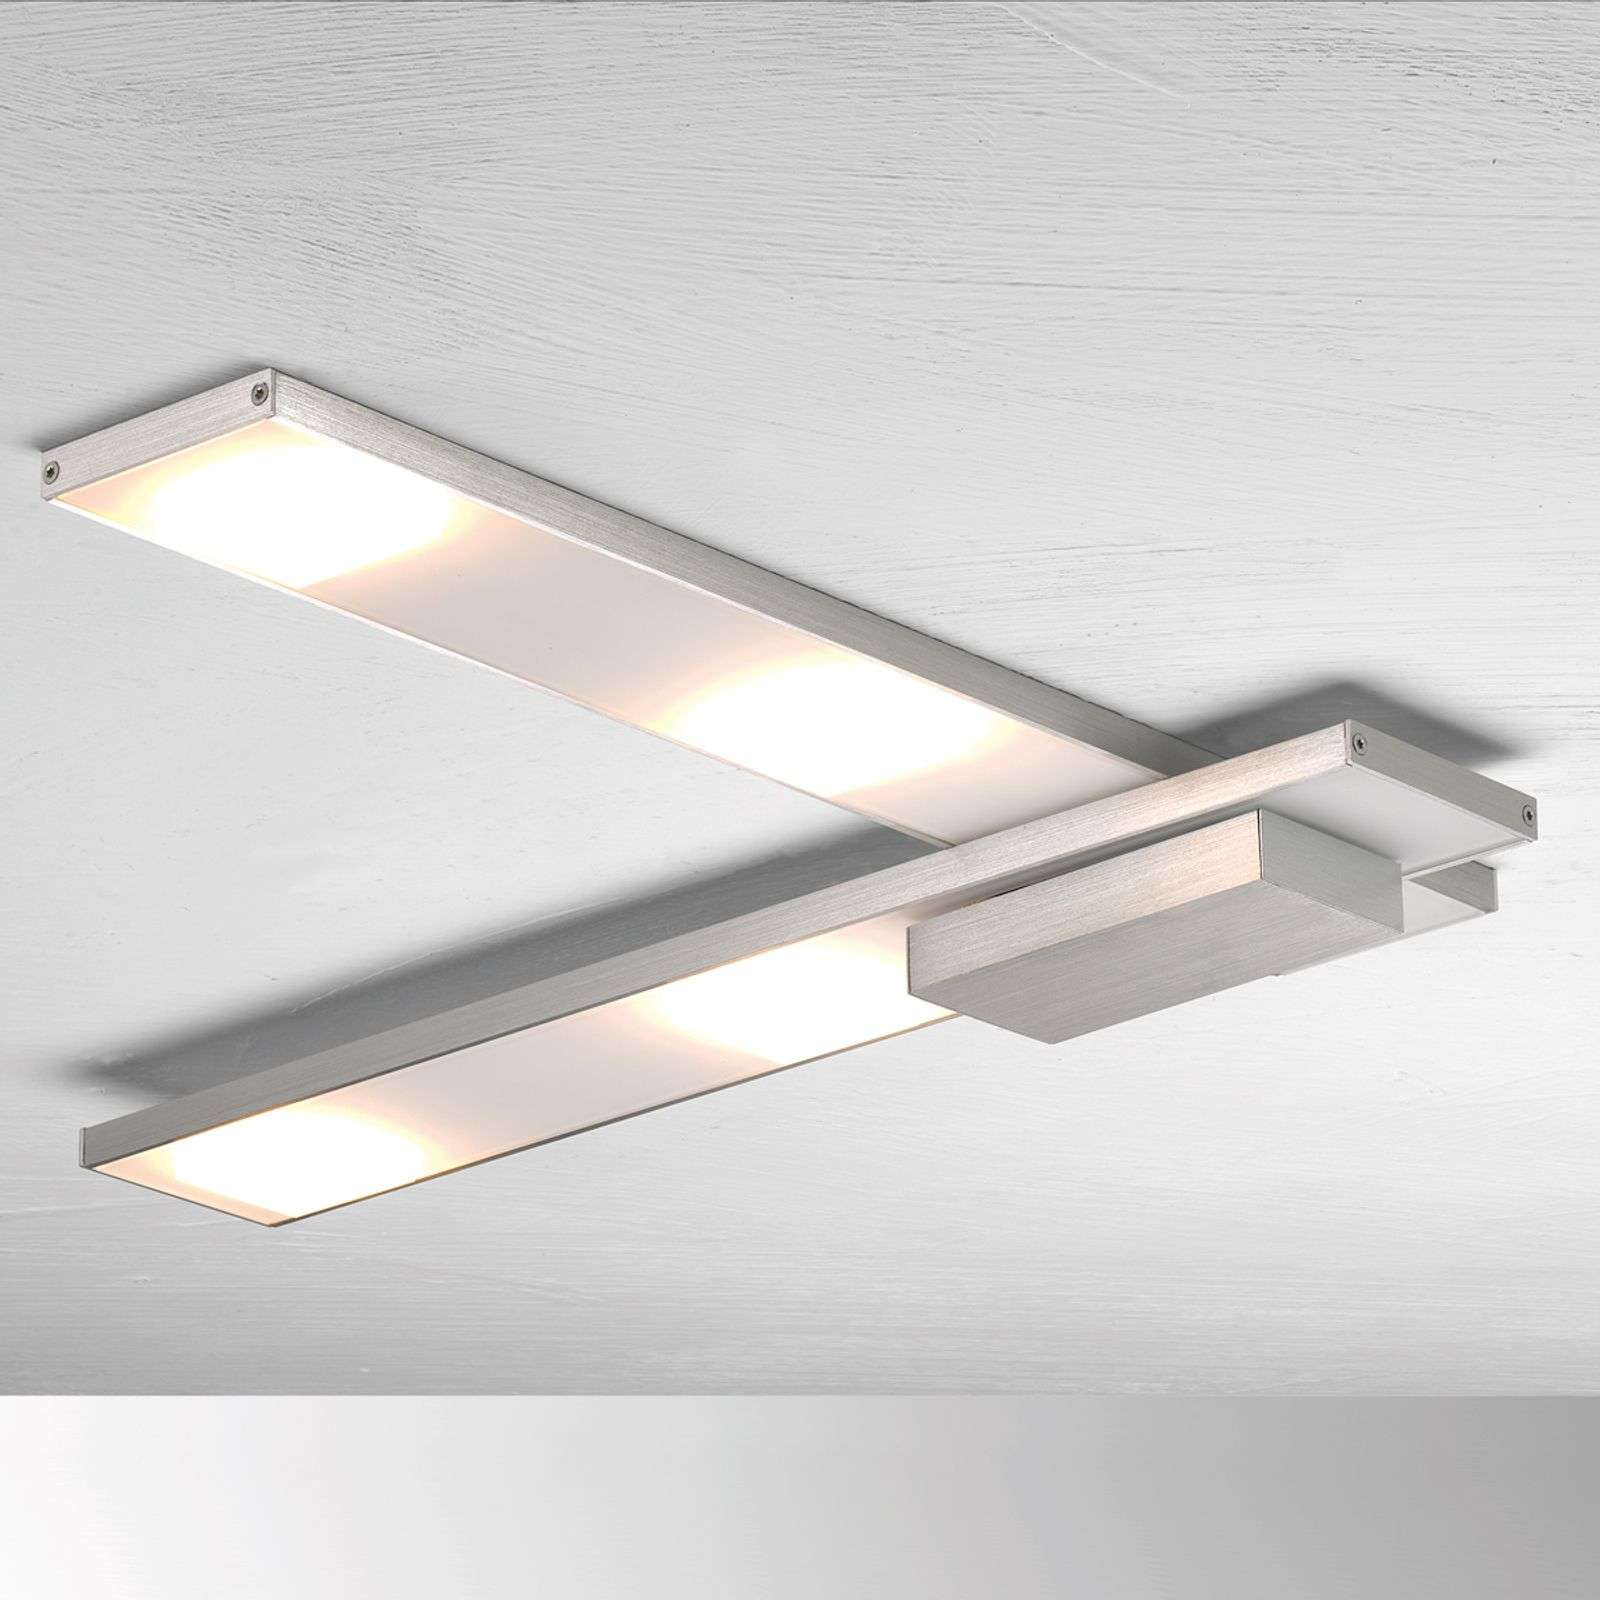 Geraffineerde LED plafondlamp Slight, aluminium